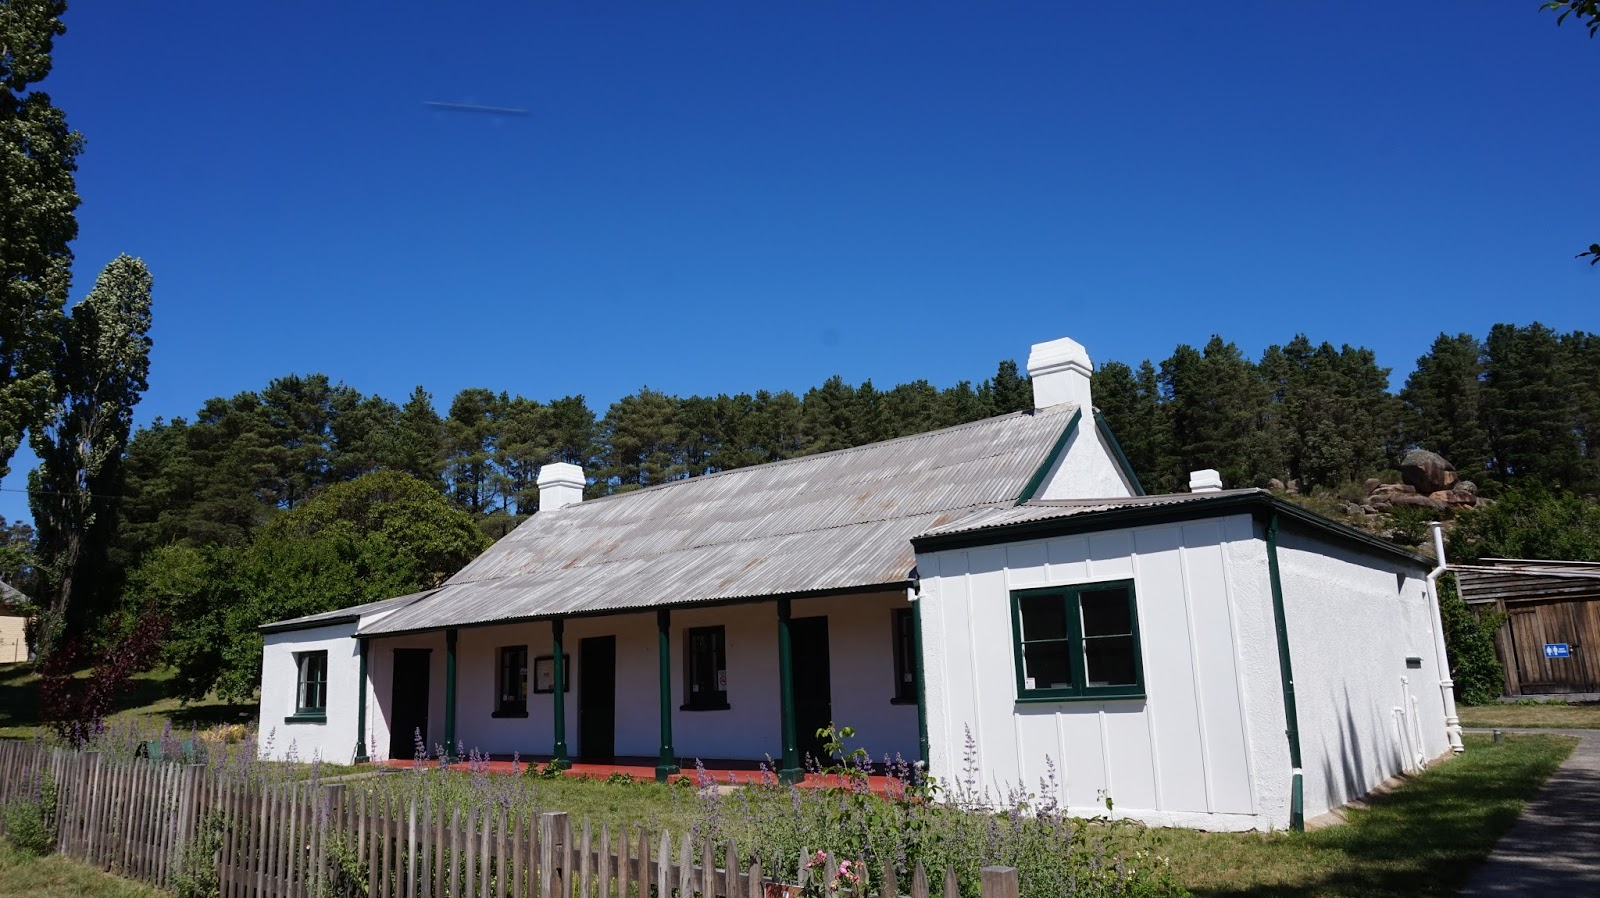 Life at arbordale farm a 2 week nsw road trip part 3 for 12 terrace road post office